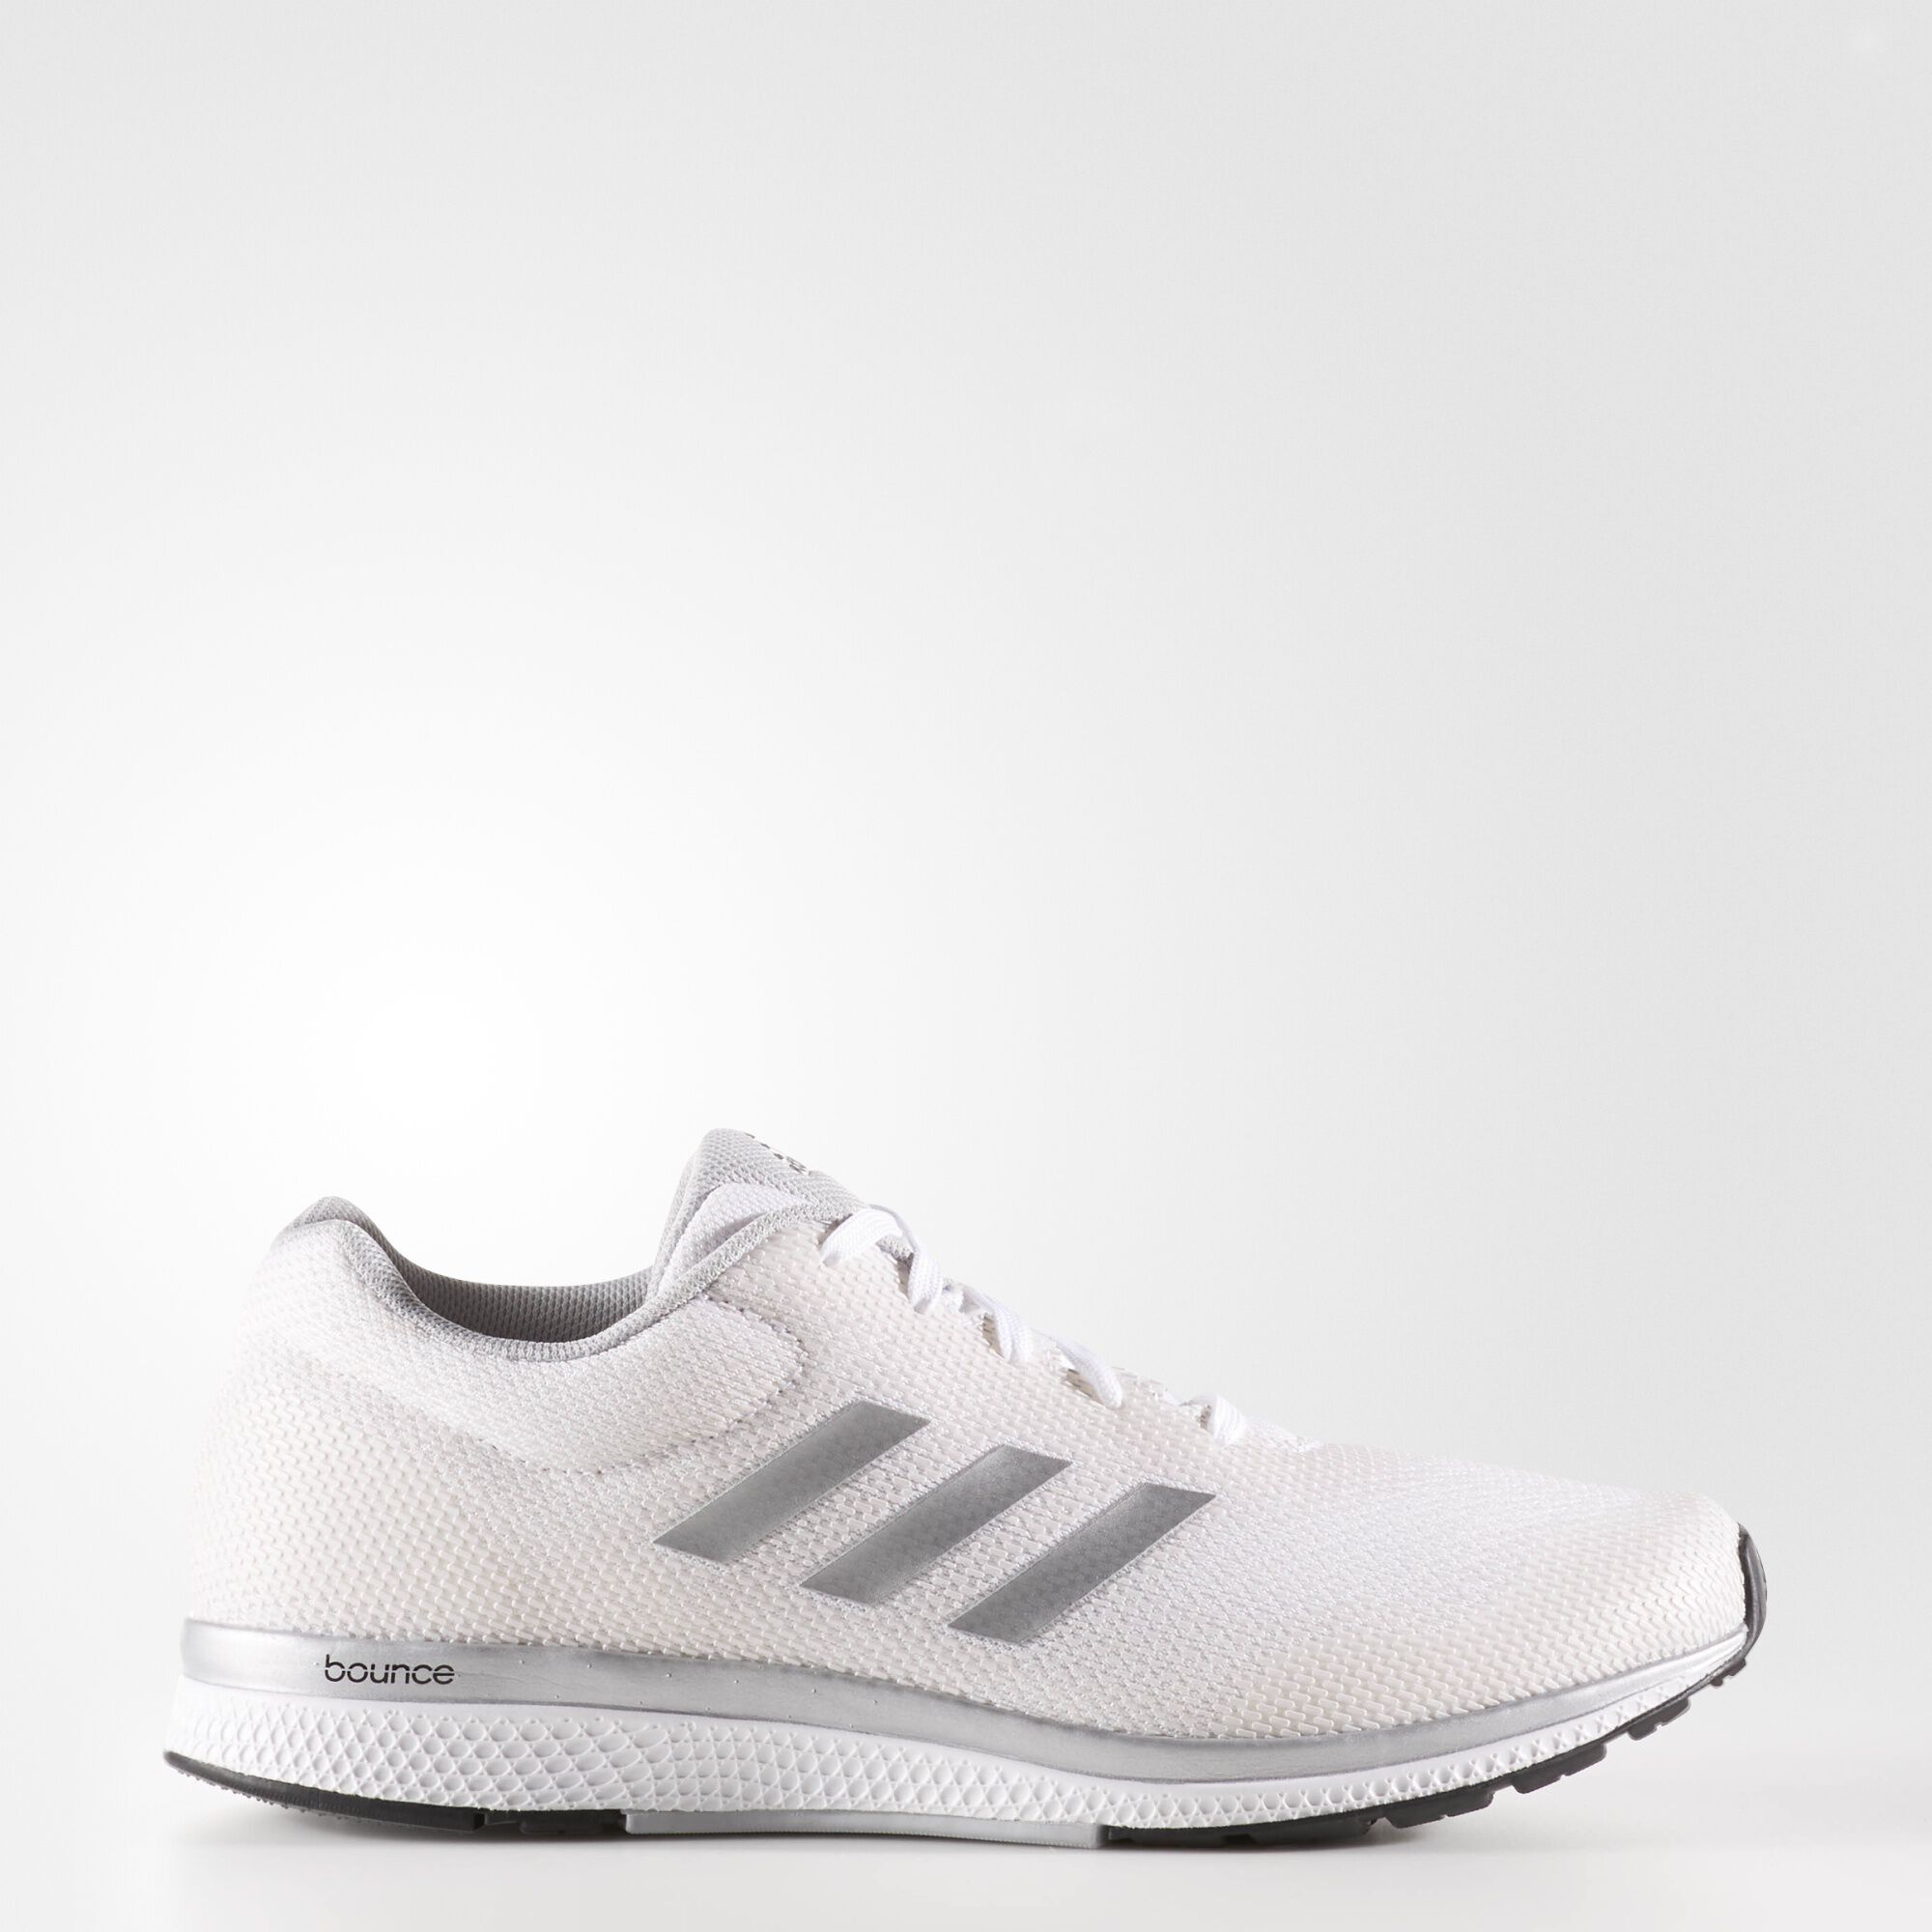 adiads outlet hzbc  adidas outlet pa